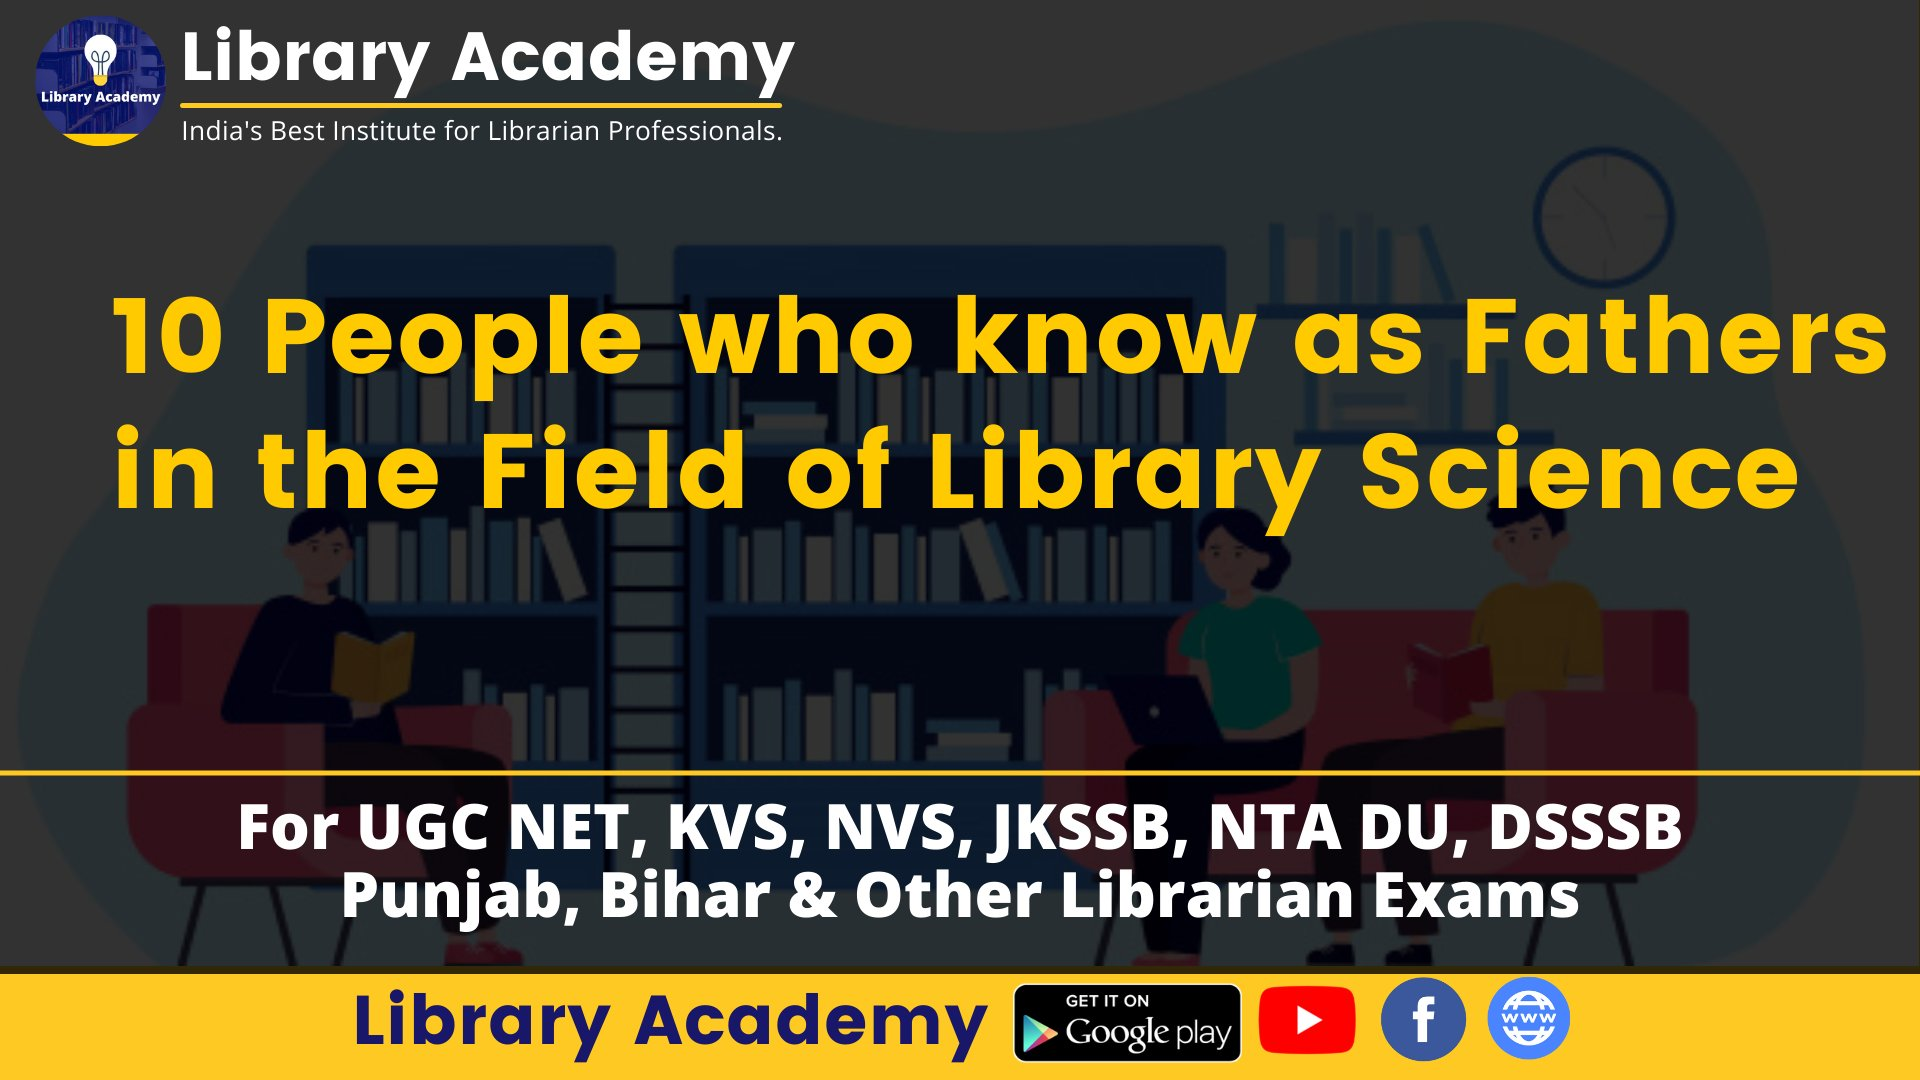 Fathers in the Field of Library Science